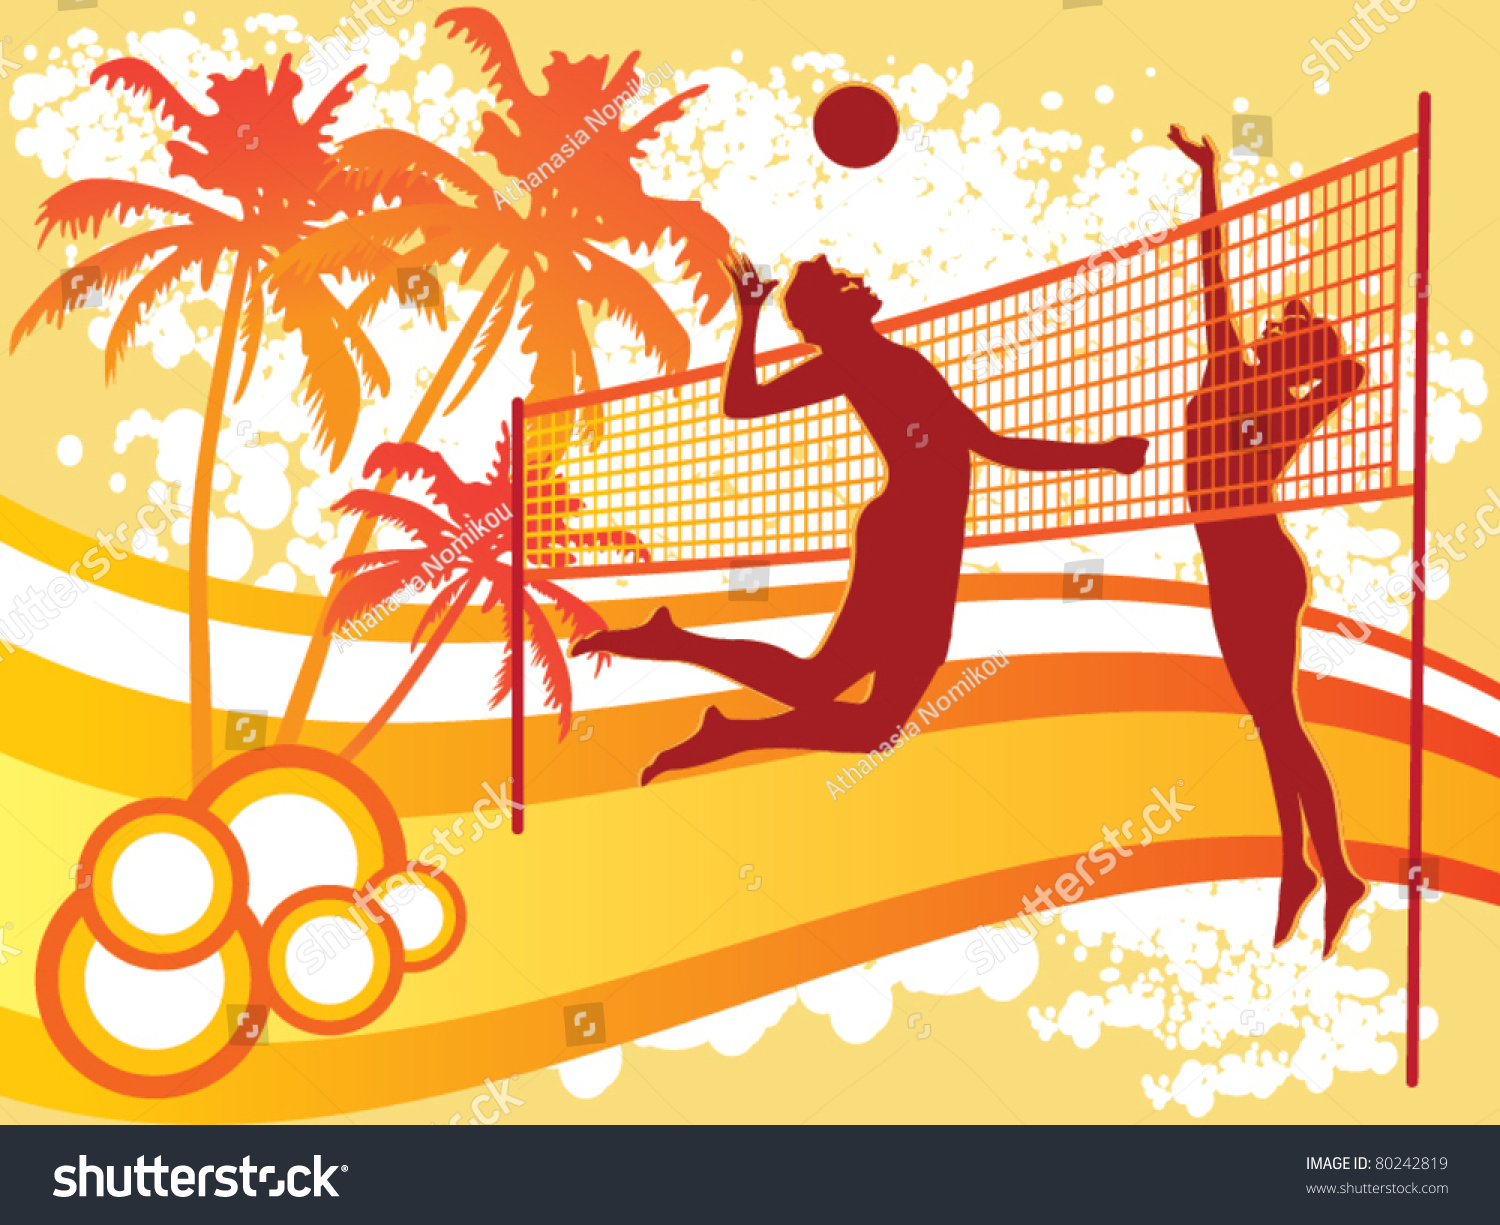 Abstract Design Of A Beach Volleyball Player Vector Image: Beach Volley Vector Stock Vector 80242819